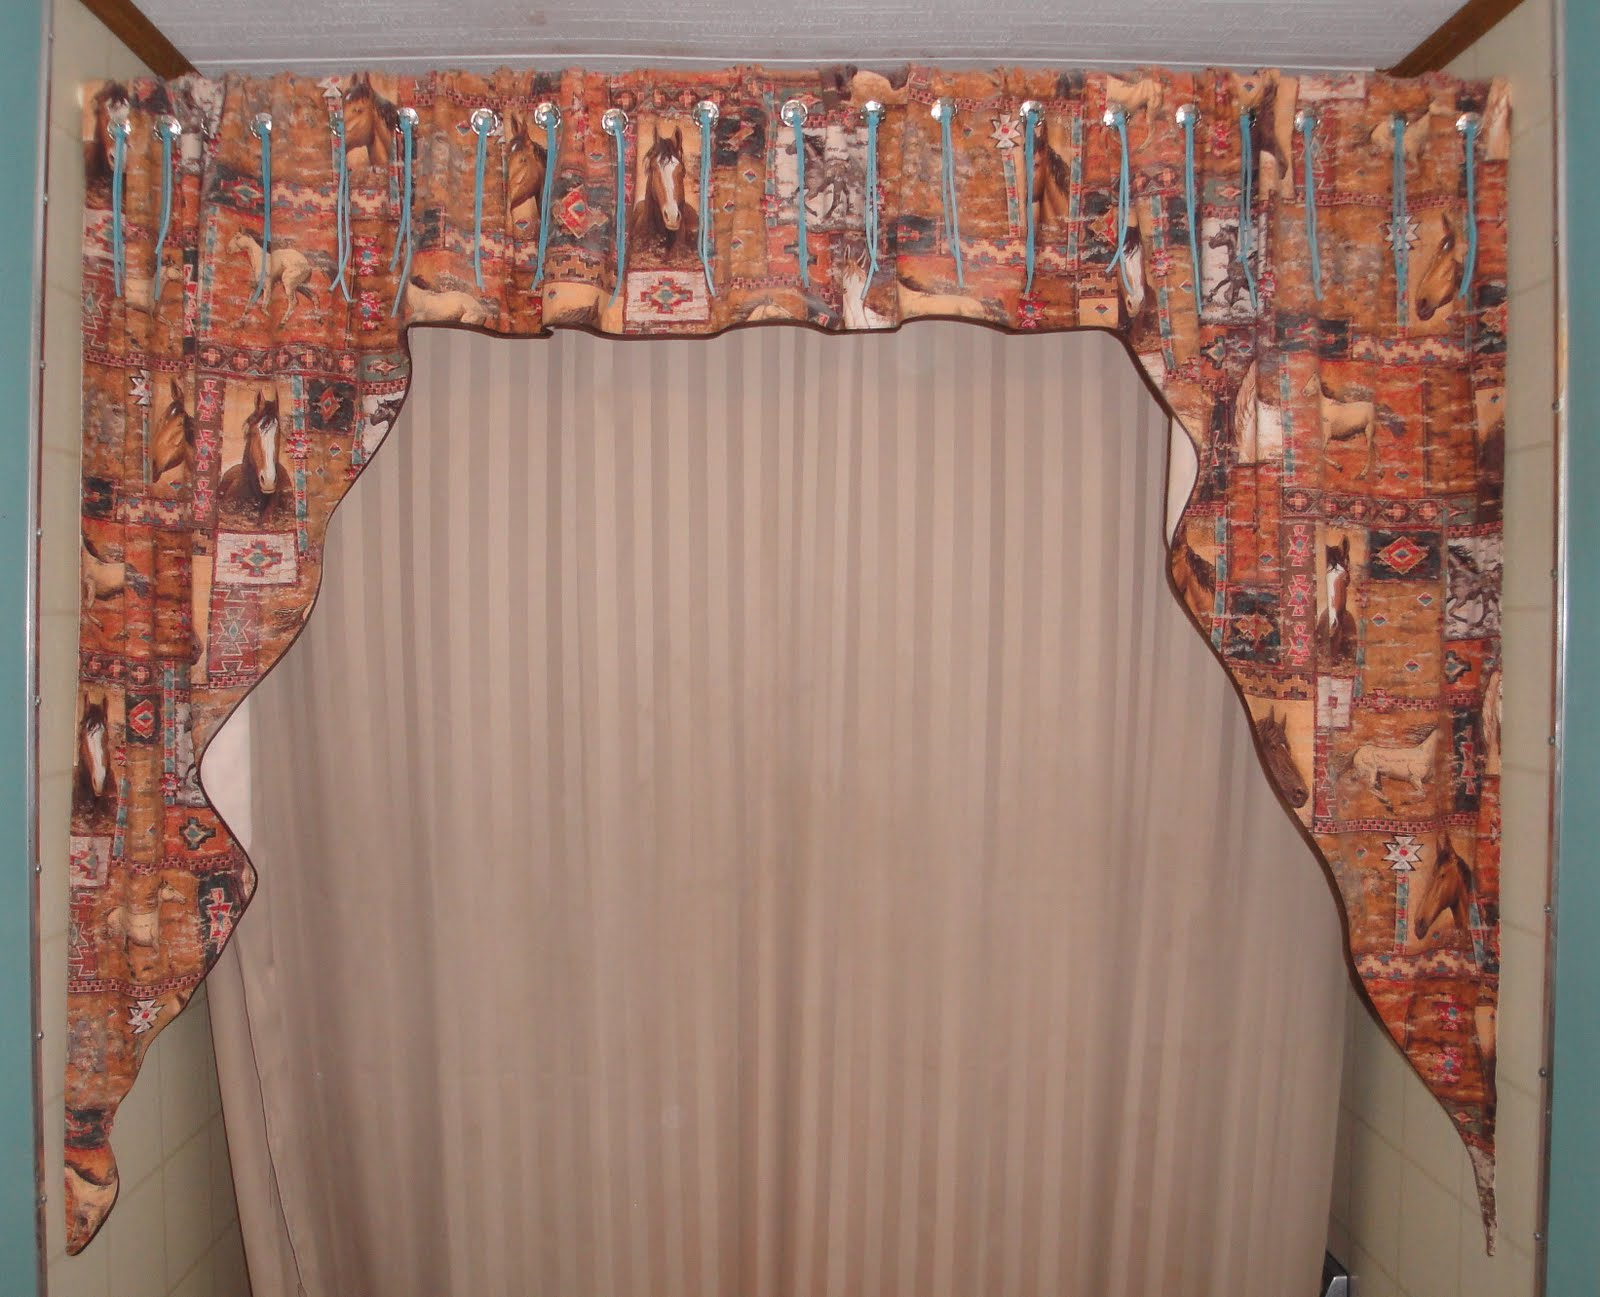 Shower Curtains With Valance - Green Room Interiors Blog